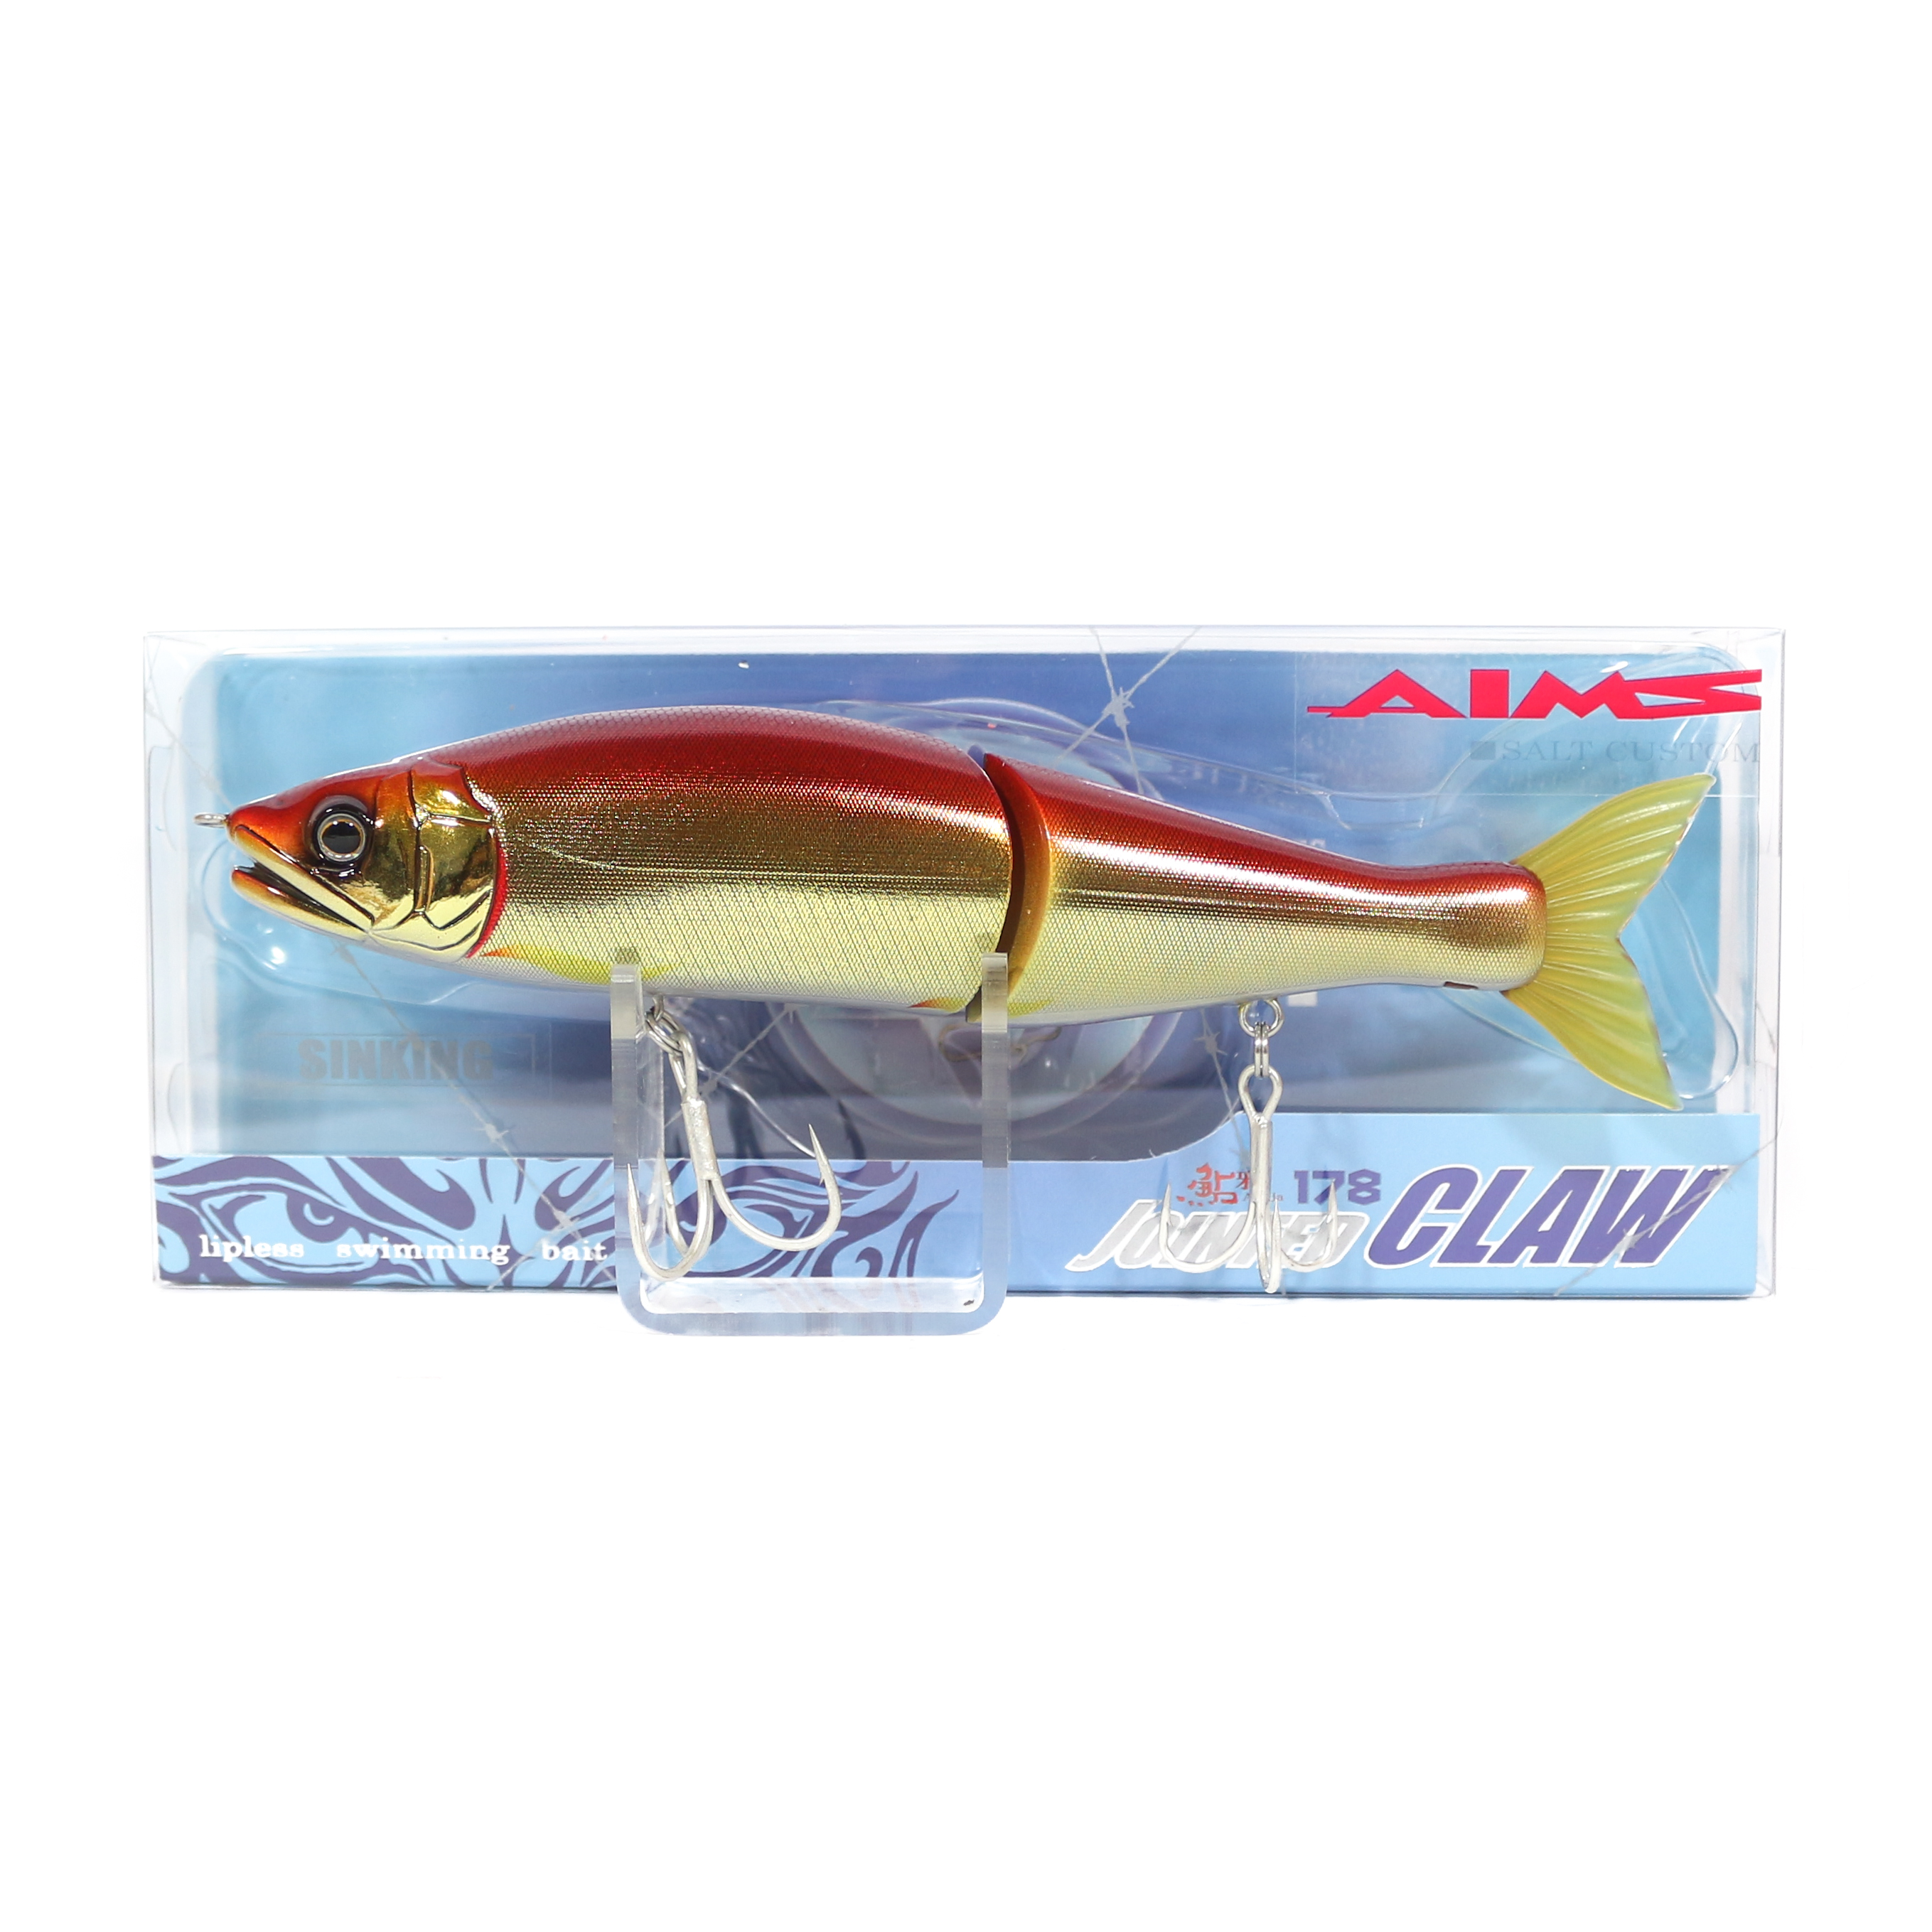 Gan Craft Jointed Claw 178 Sinking Jointed Lure AS-05 (0502)